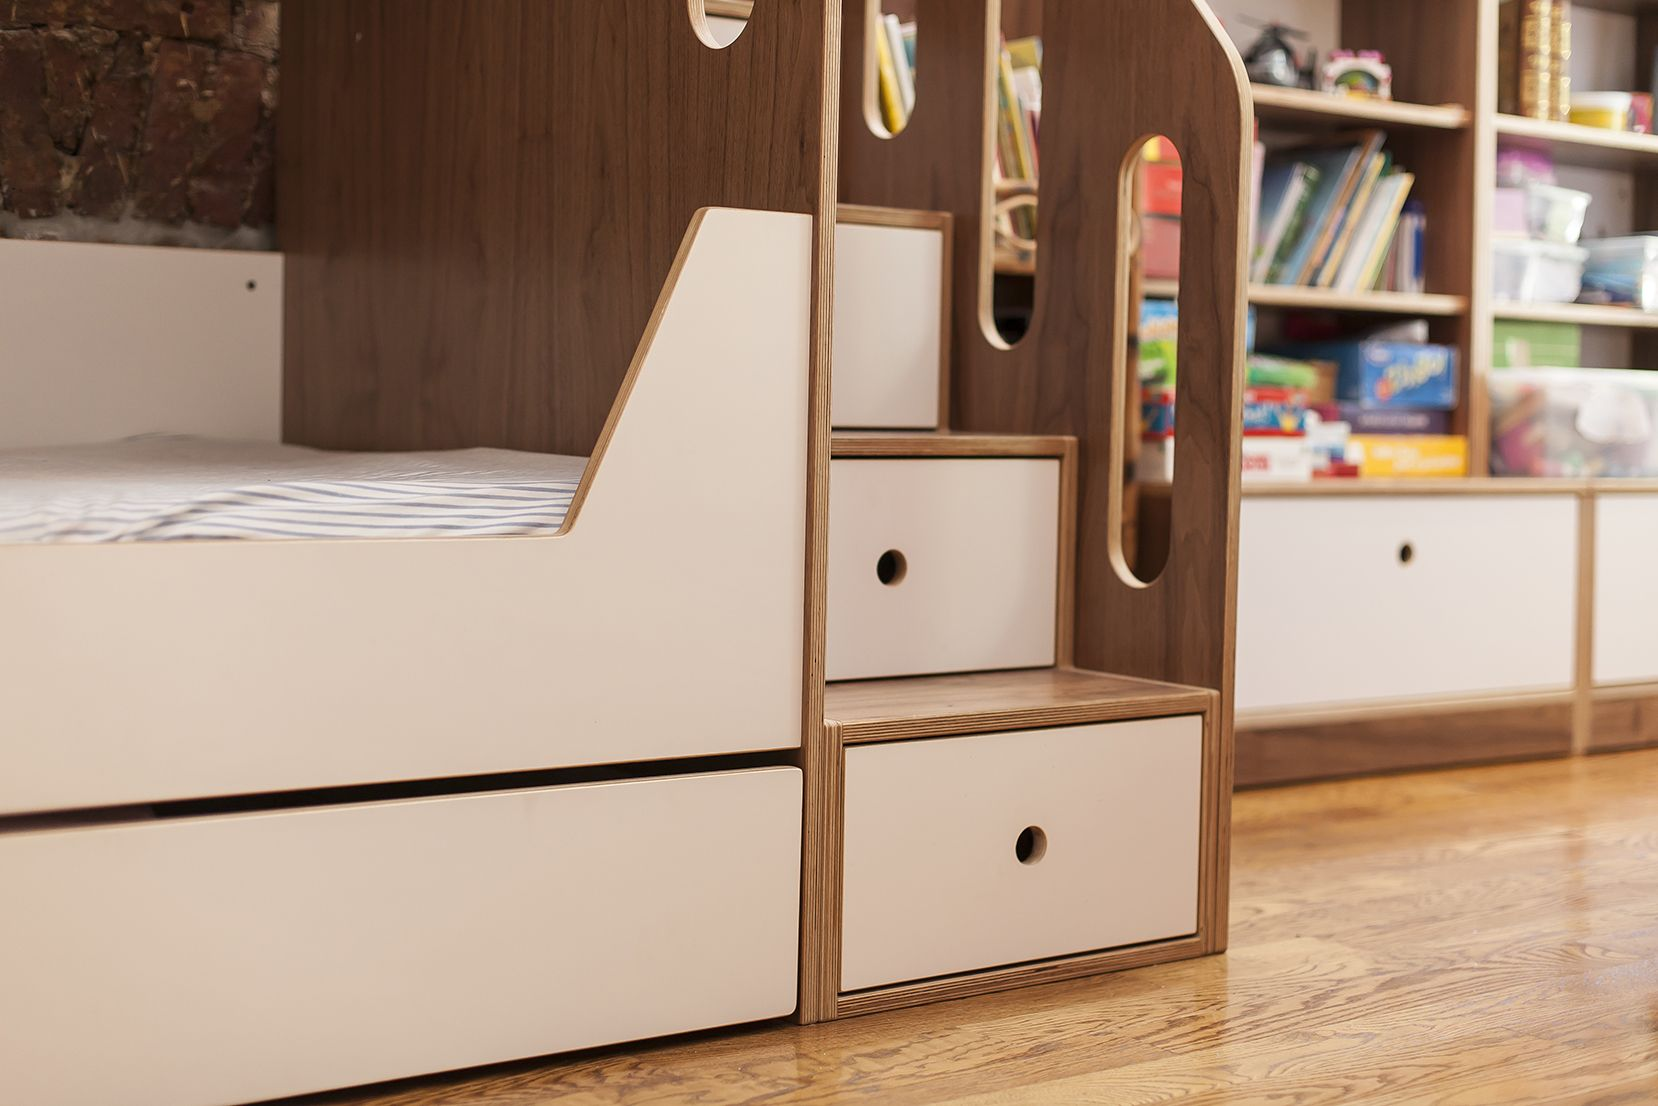 A closer look shows you the beautiful combination of the walnut and white finish.